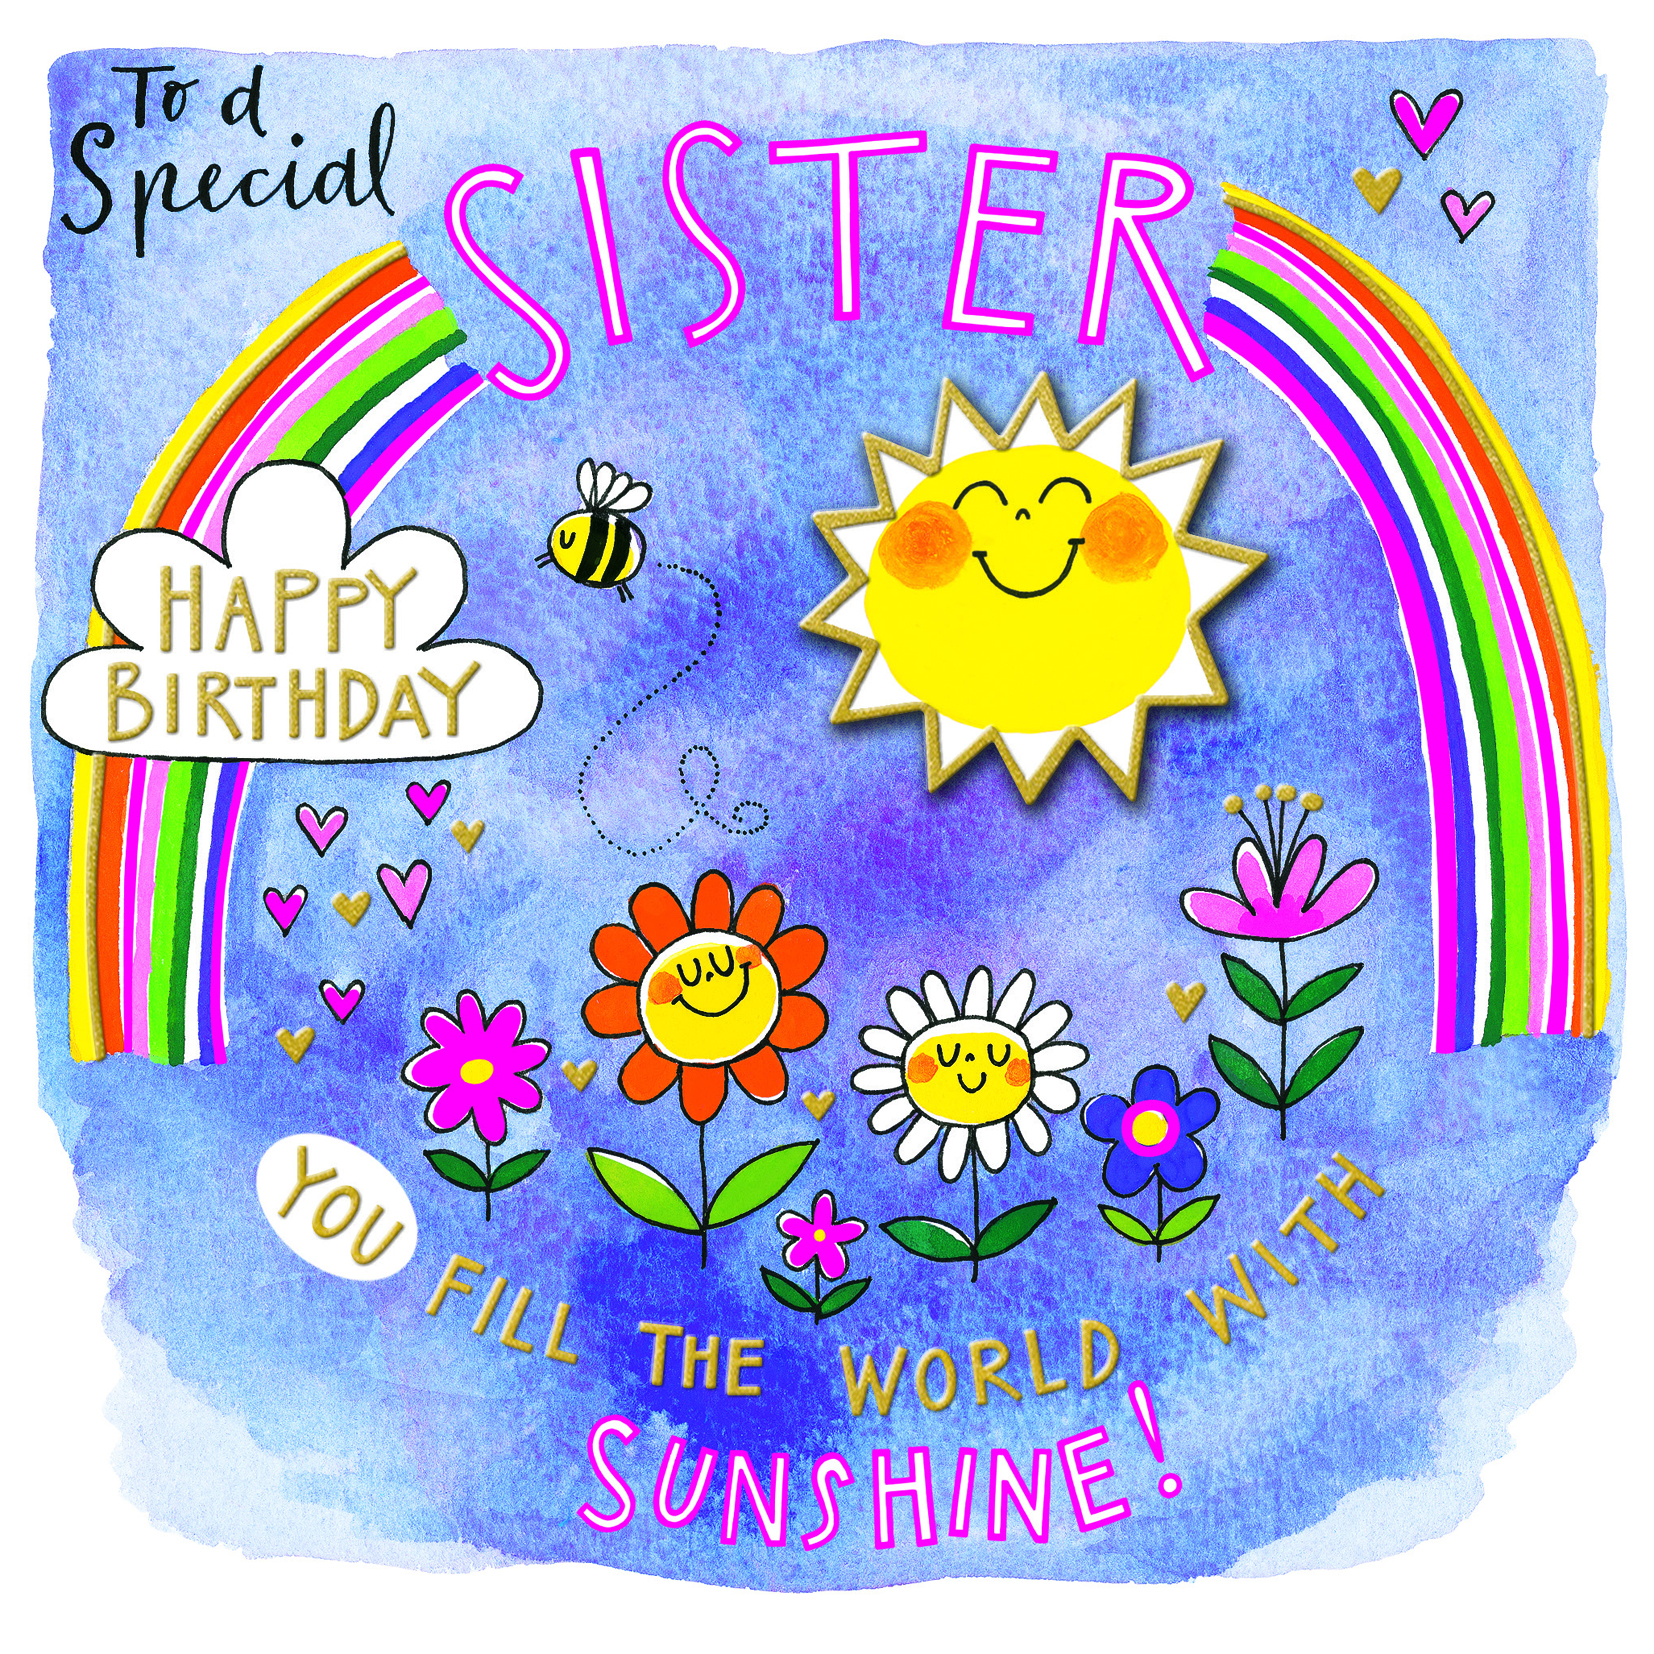 Sunshine Sister Birthday Card